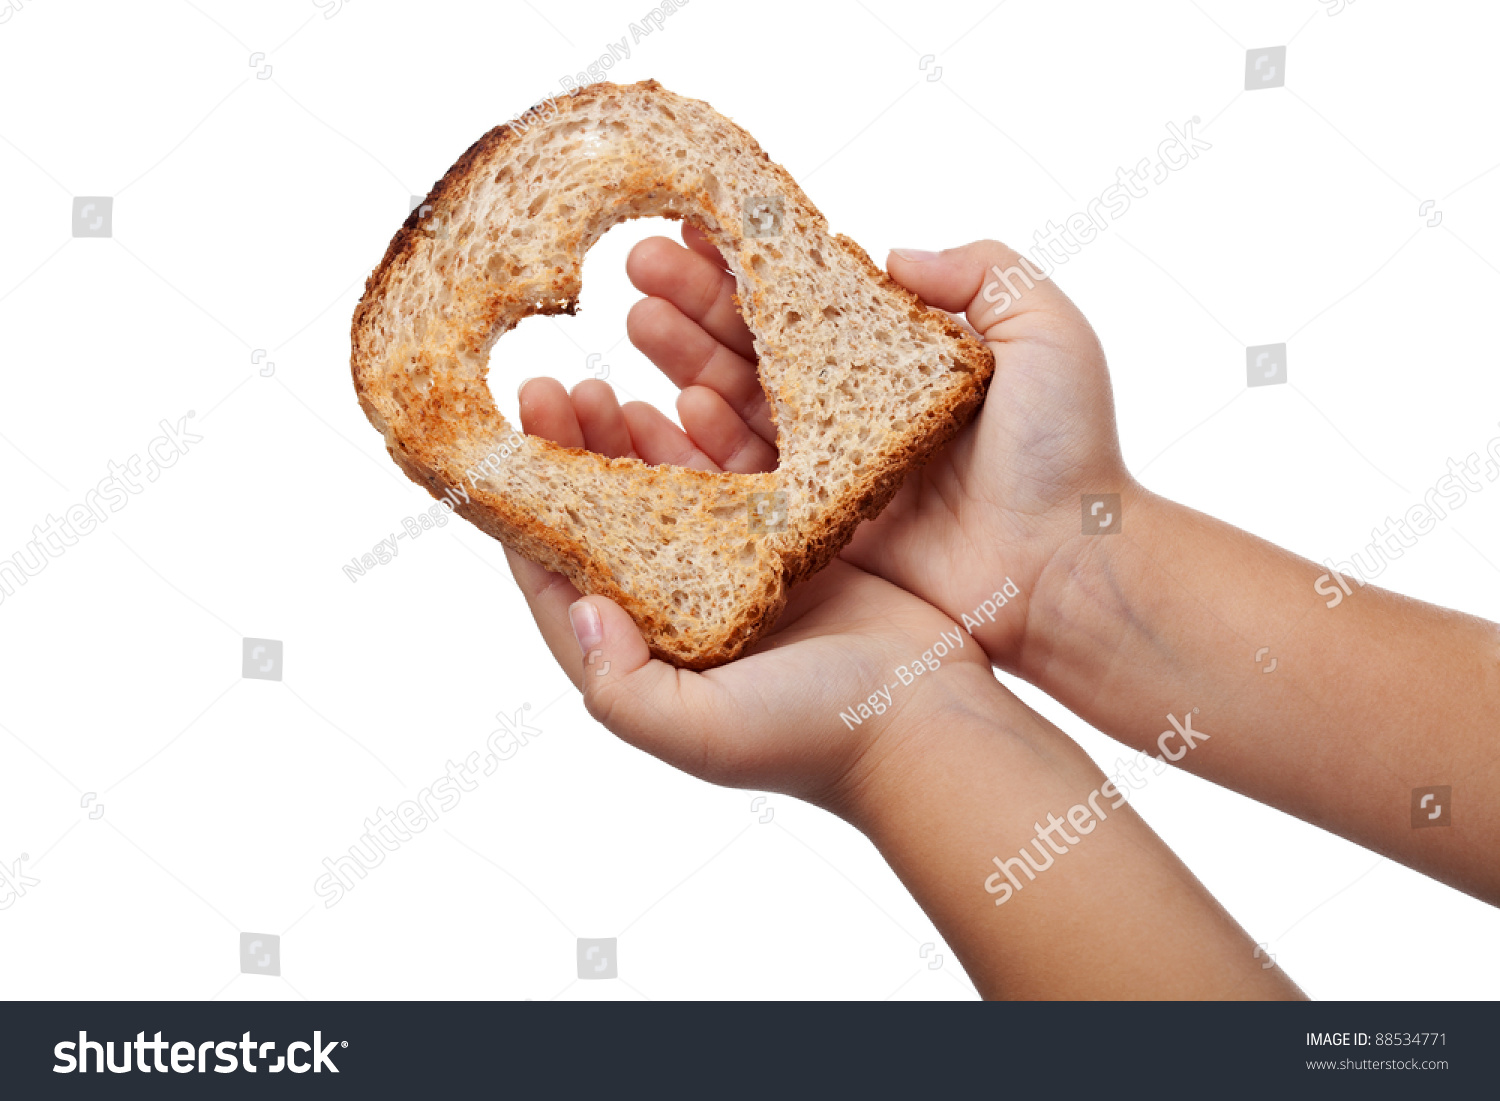 Giving Food With Love Concept - Slice Of Bread In Child ...